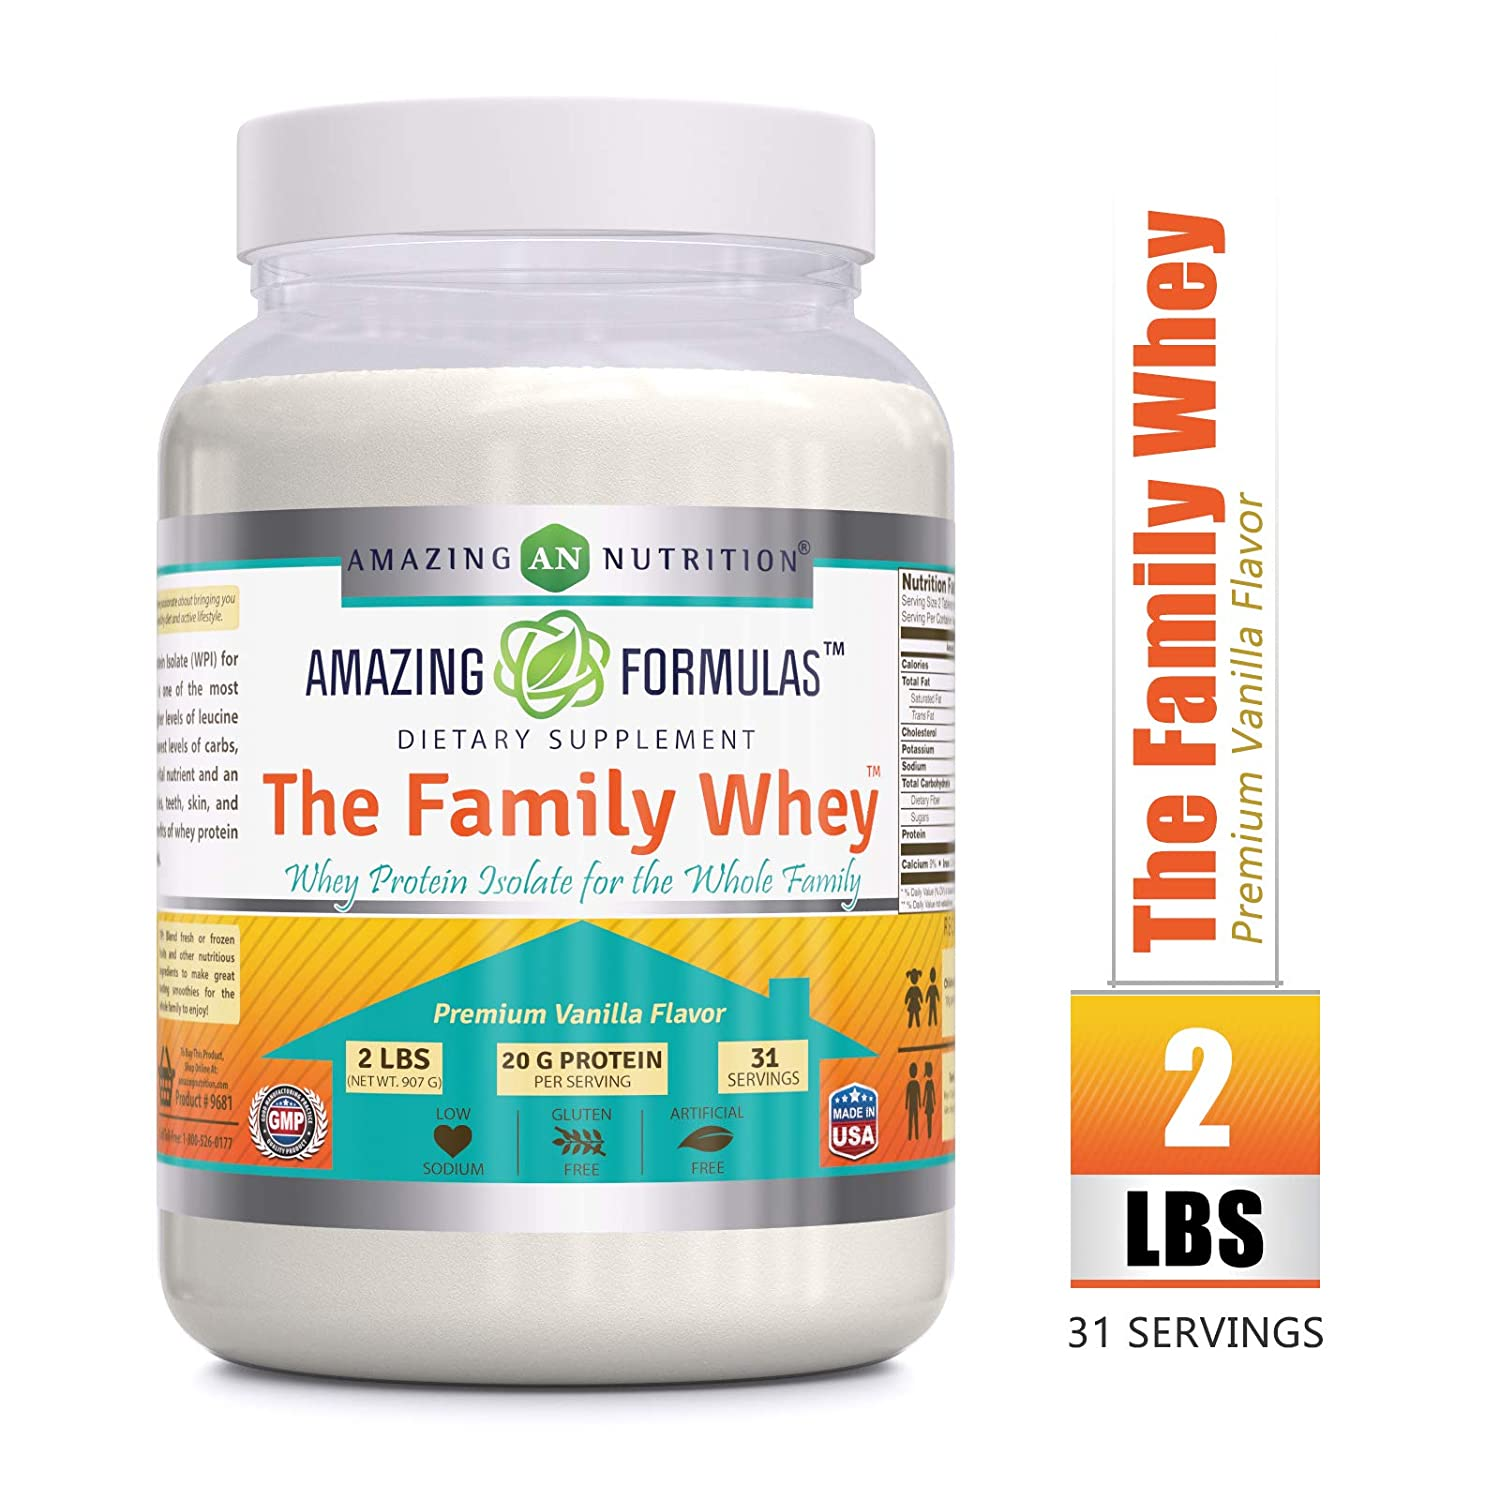 Amazing Formulas The Family Whey Whey Protein Isolate Powder for The Whole Family 2 lbs Most Complete Purest Form of Protein – Gluten Free – All Natural Ingredients-